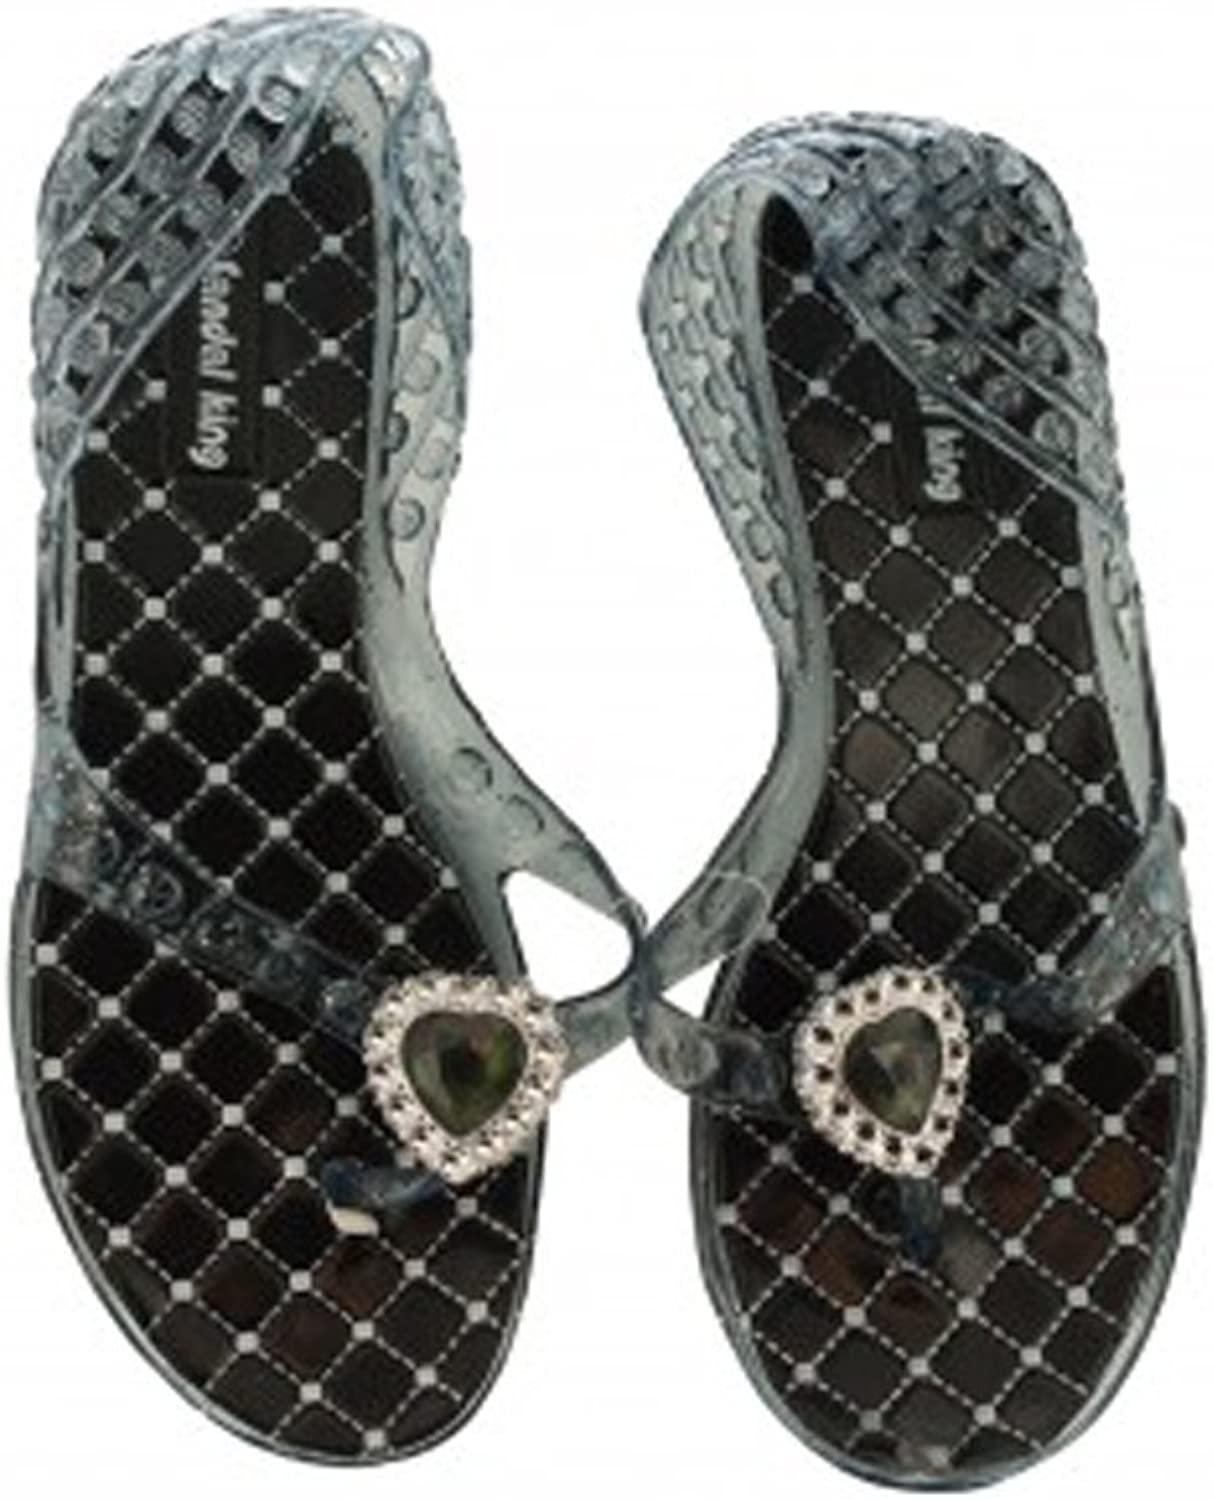 Kole Imports Ladies Glitter Jelly Sandals with Jeweled Hearts -48 Case